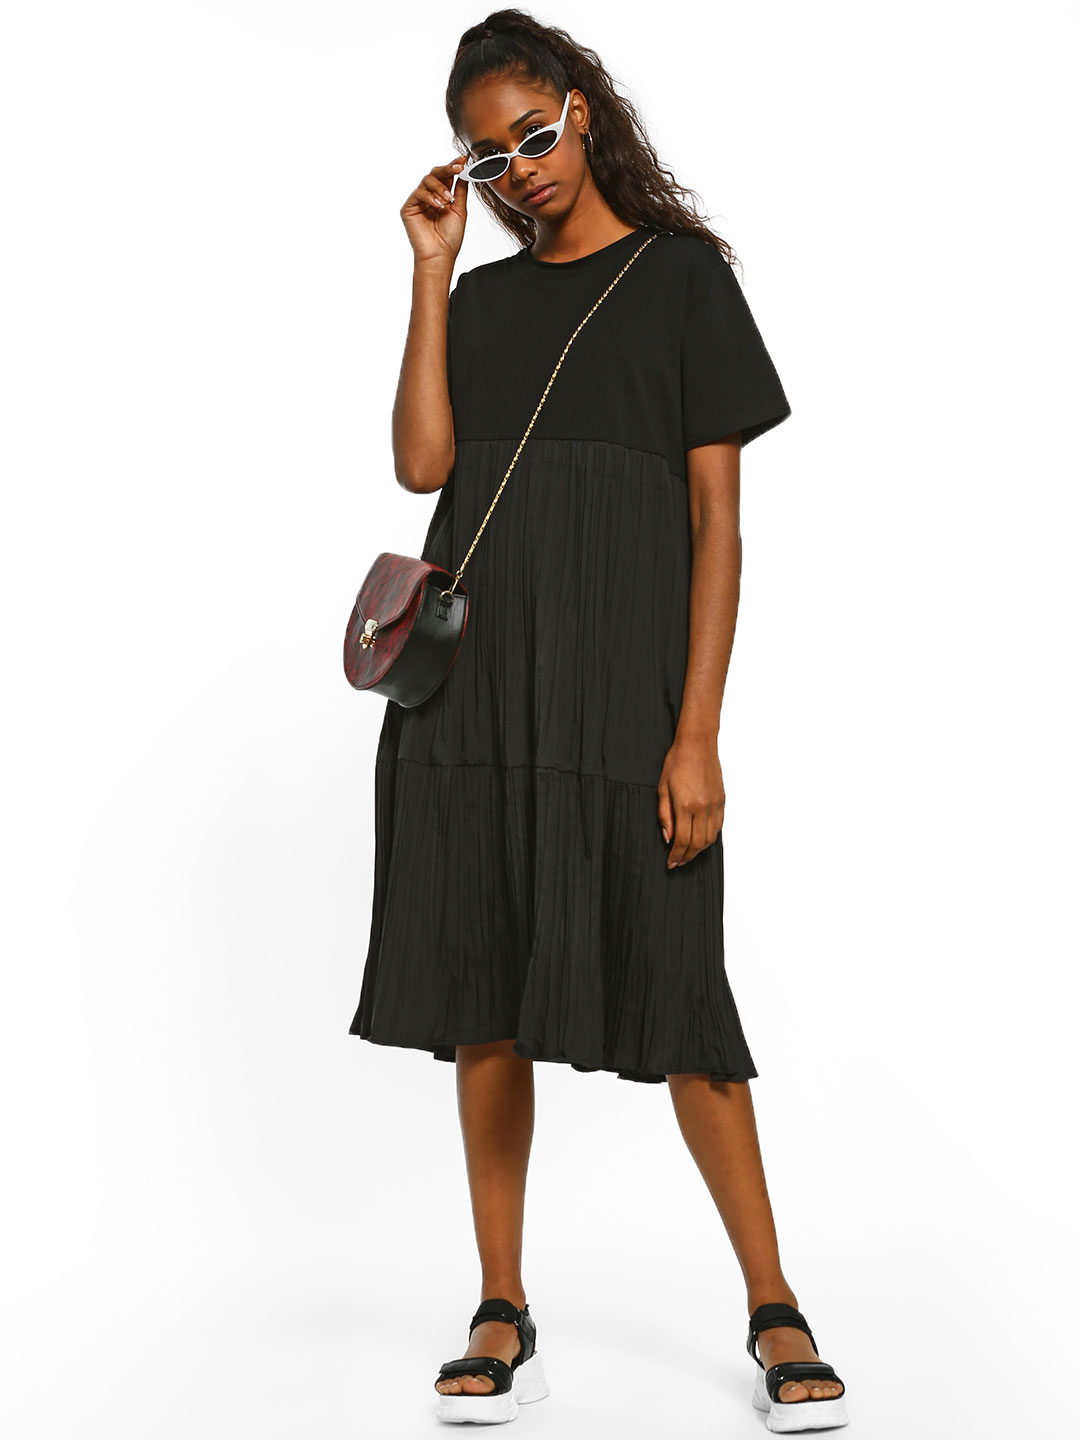 Origami Lily Black Twofer Pleated Midi Dress 1